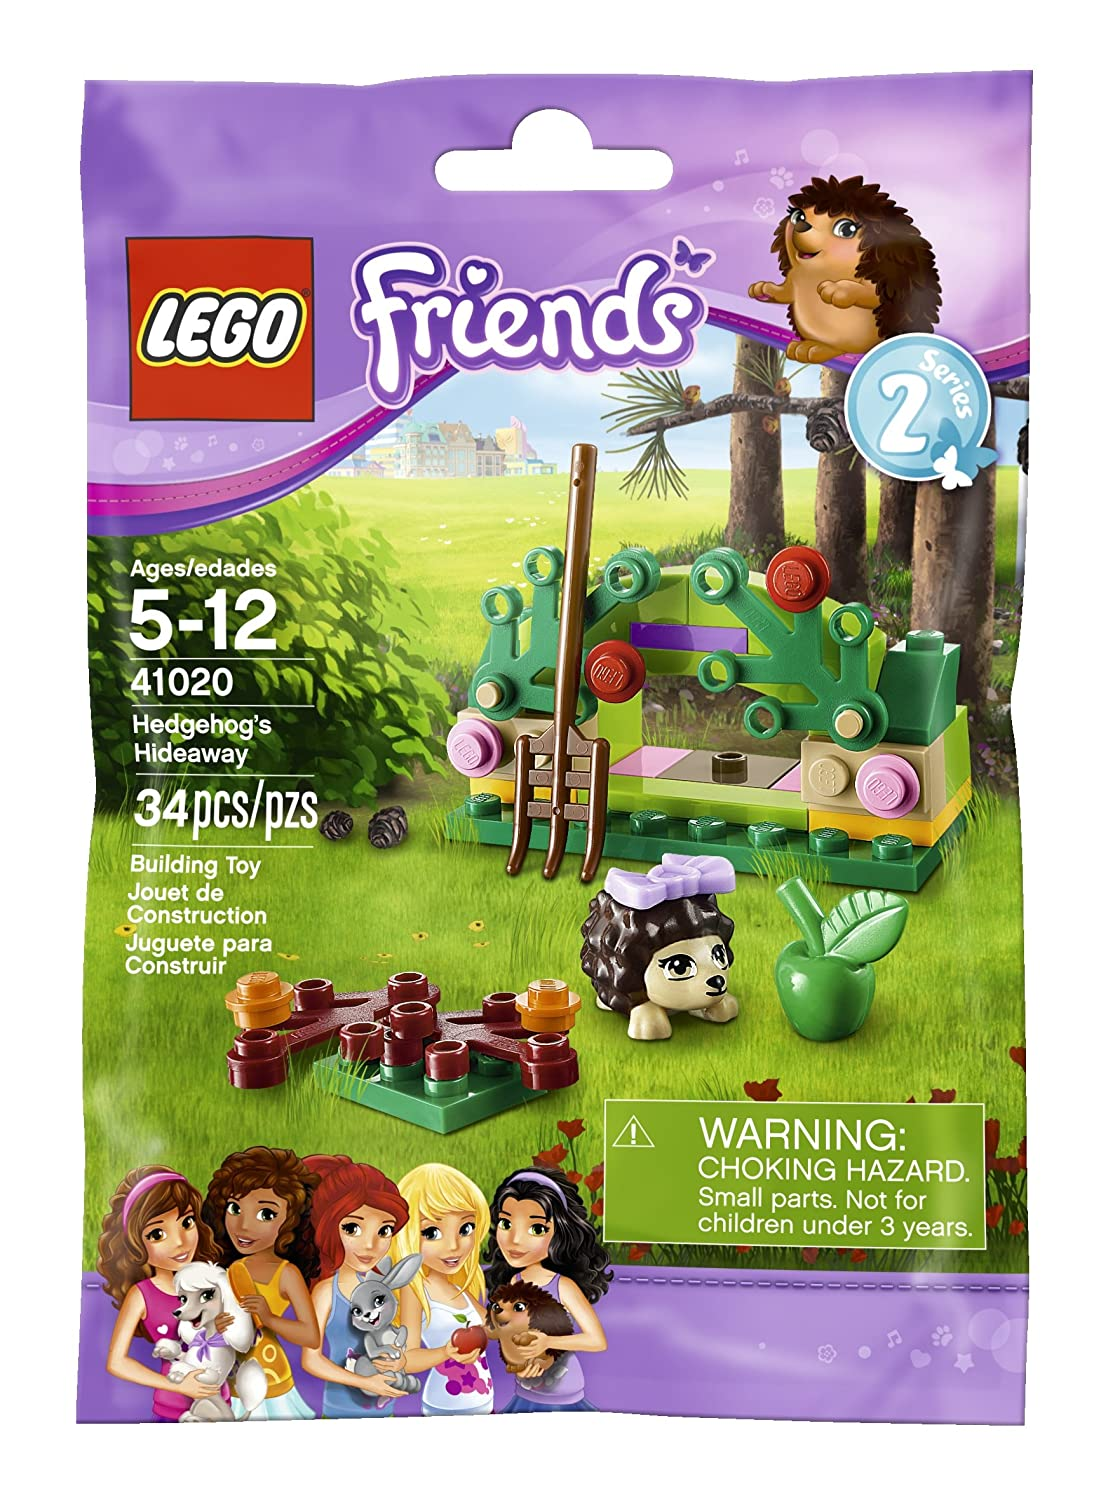 LEGO Friends deals, KidKraft Playhouses & Jumperoos on Sale!